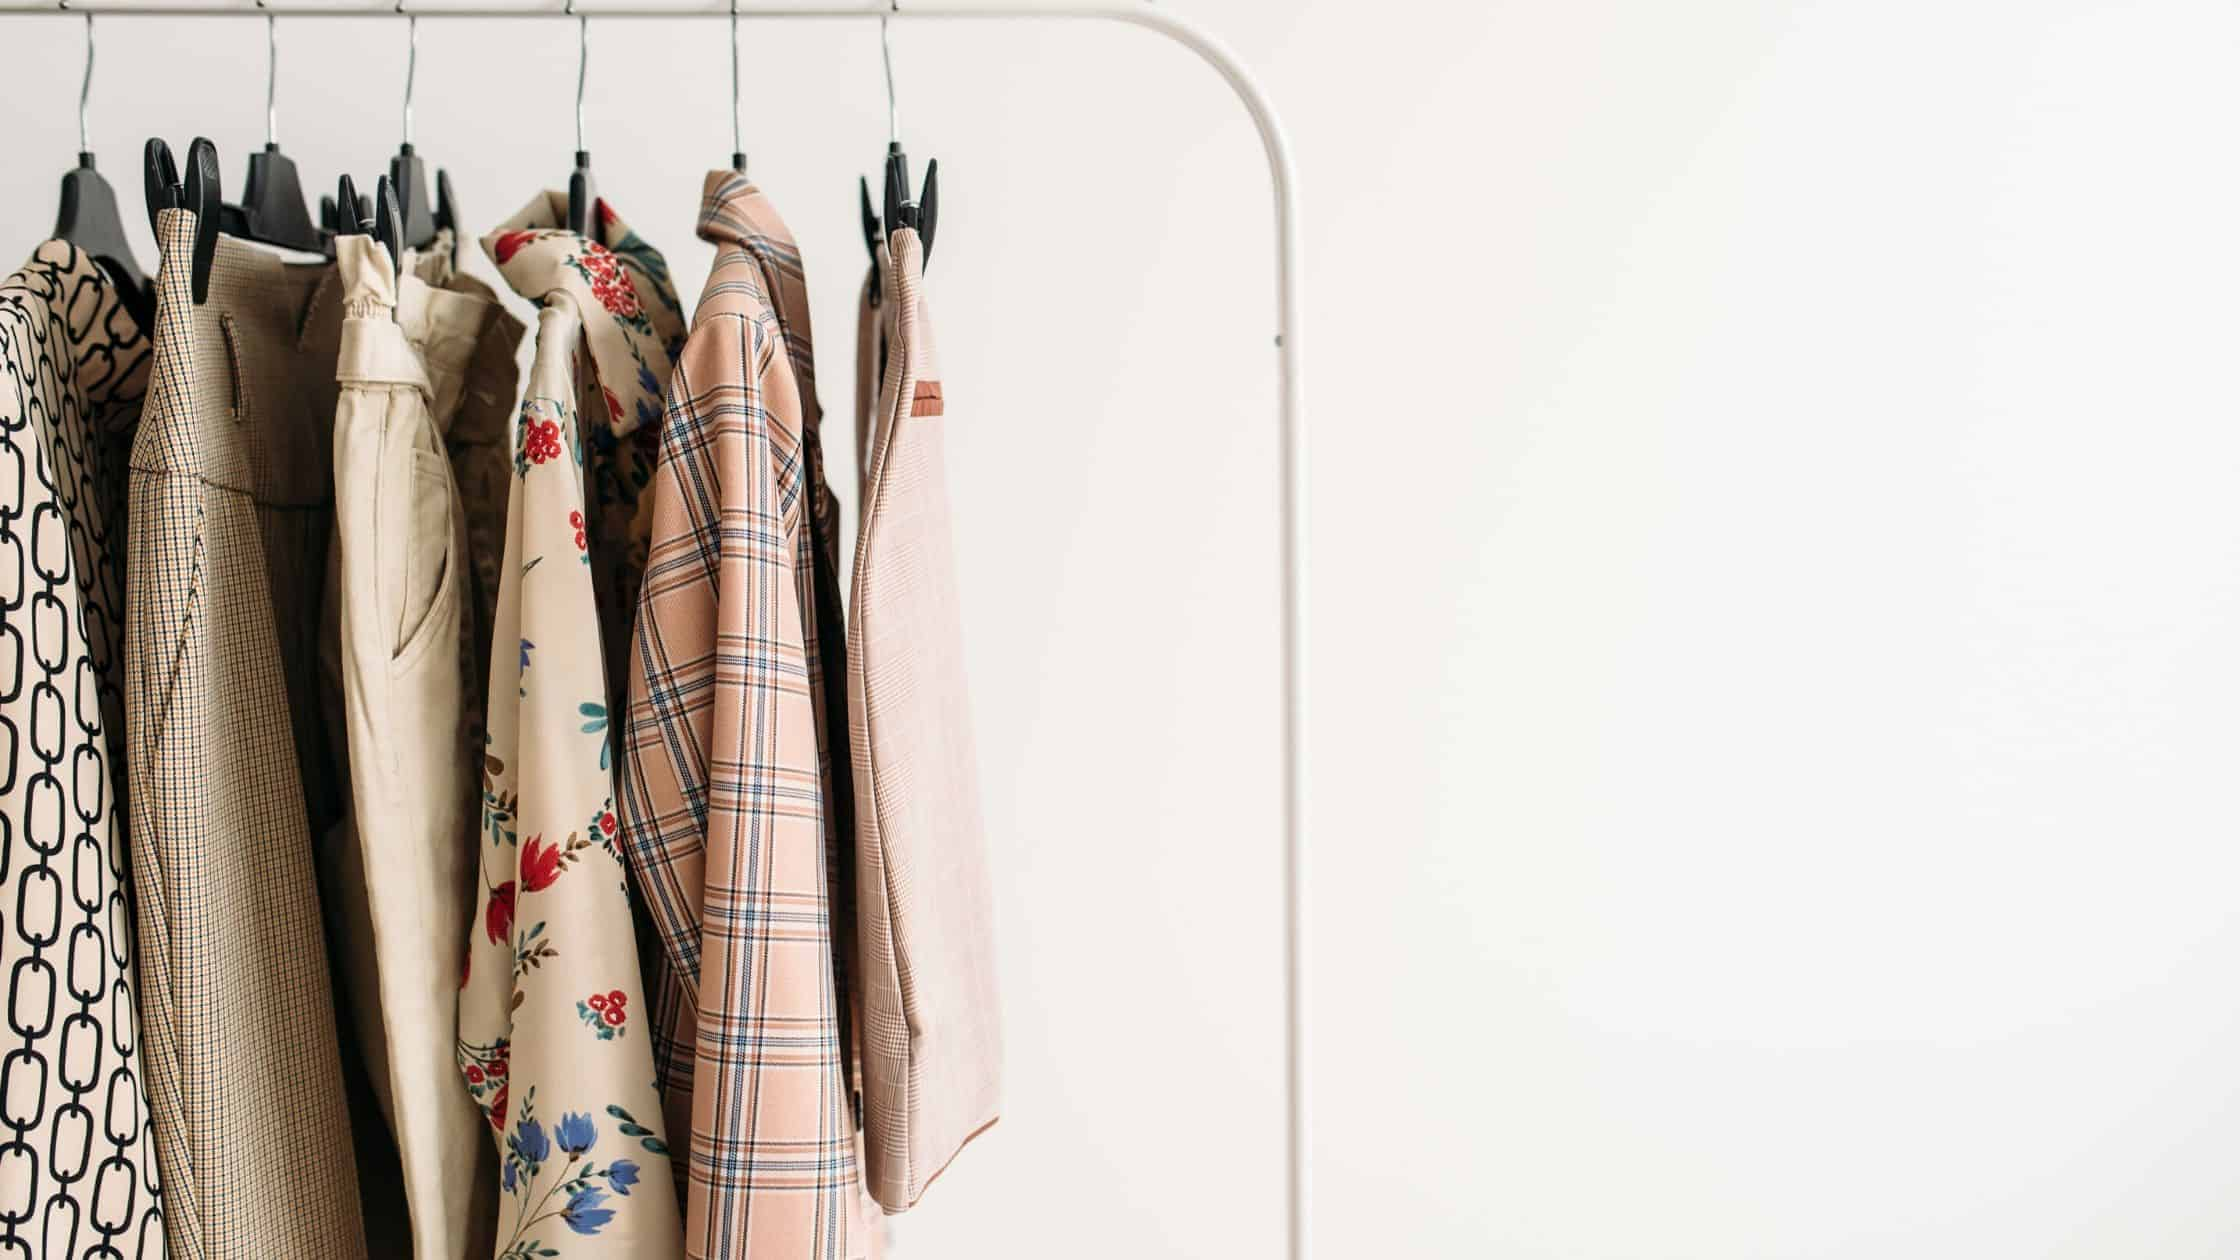 clothes from a capsule wardrobe hanging on a garment rack